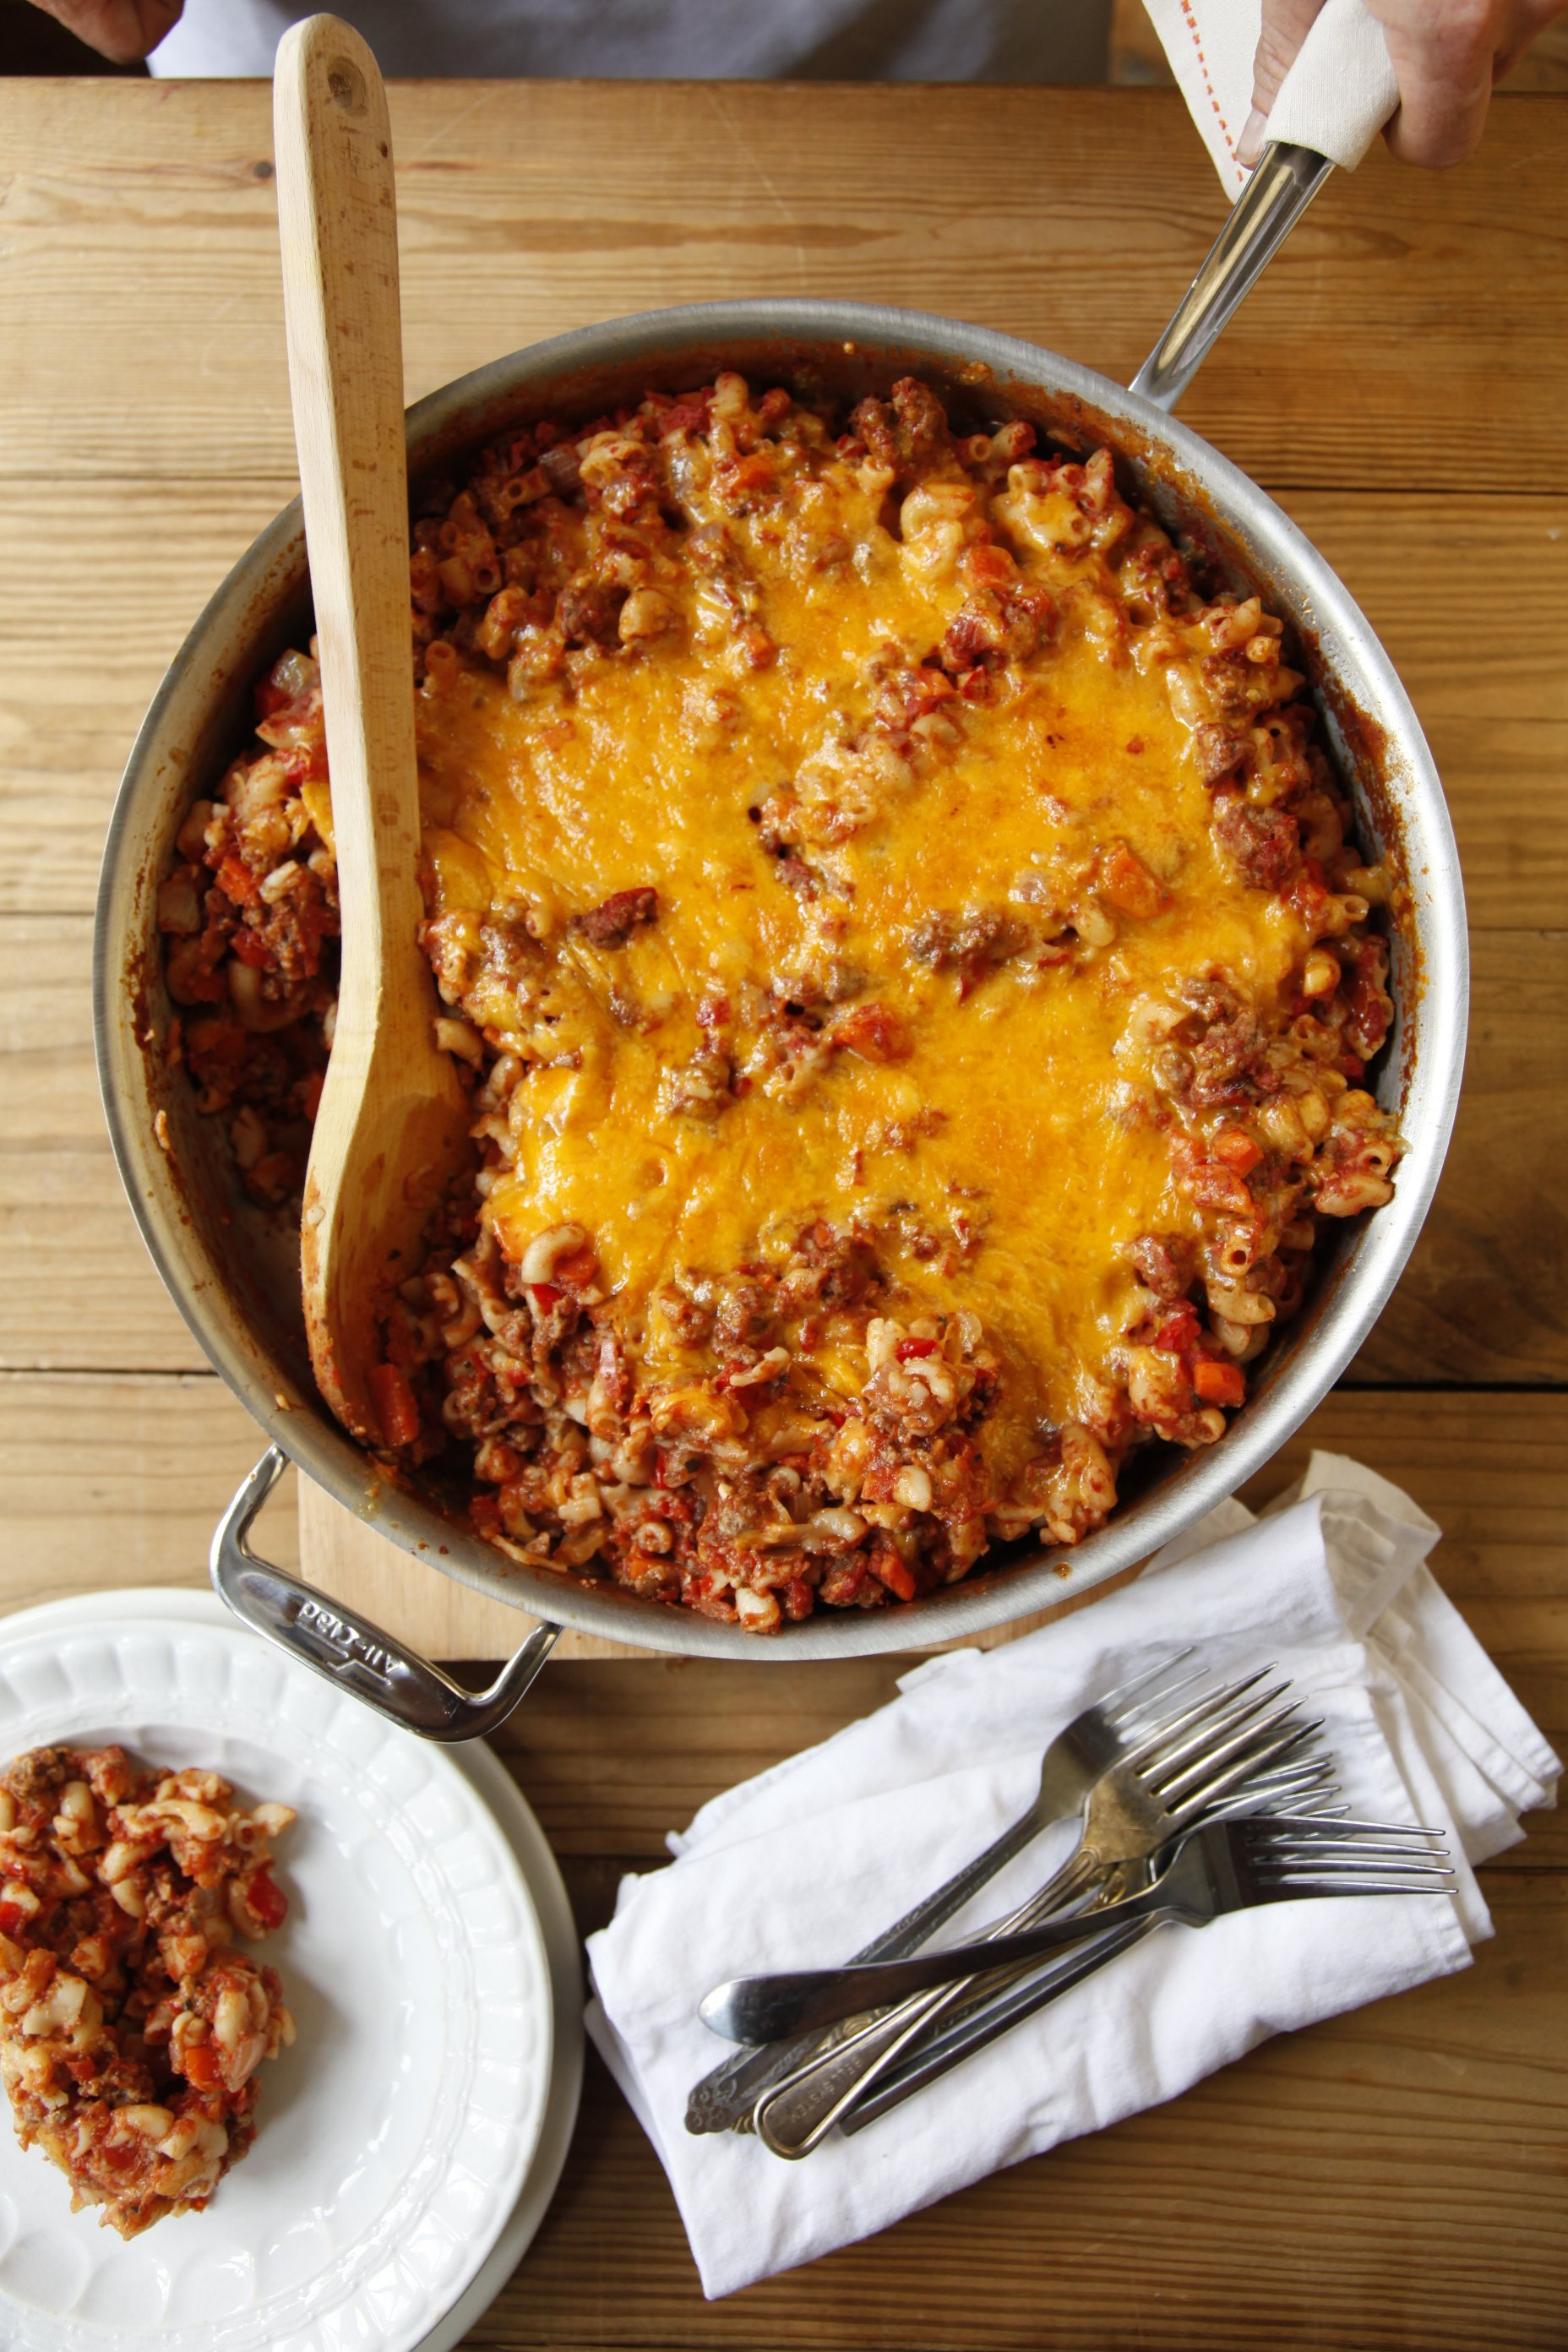 Recipe: One-Skillet Cheesy Beef and Macaroni | Kitchn